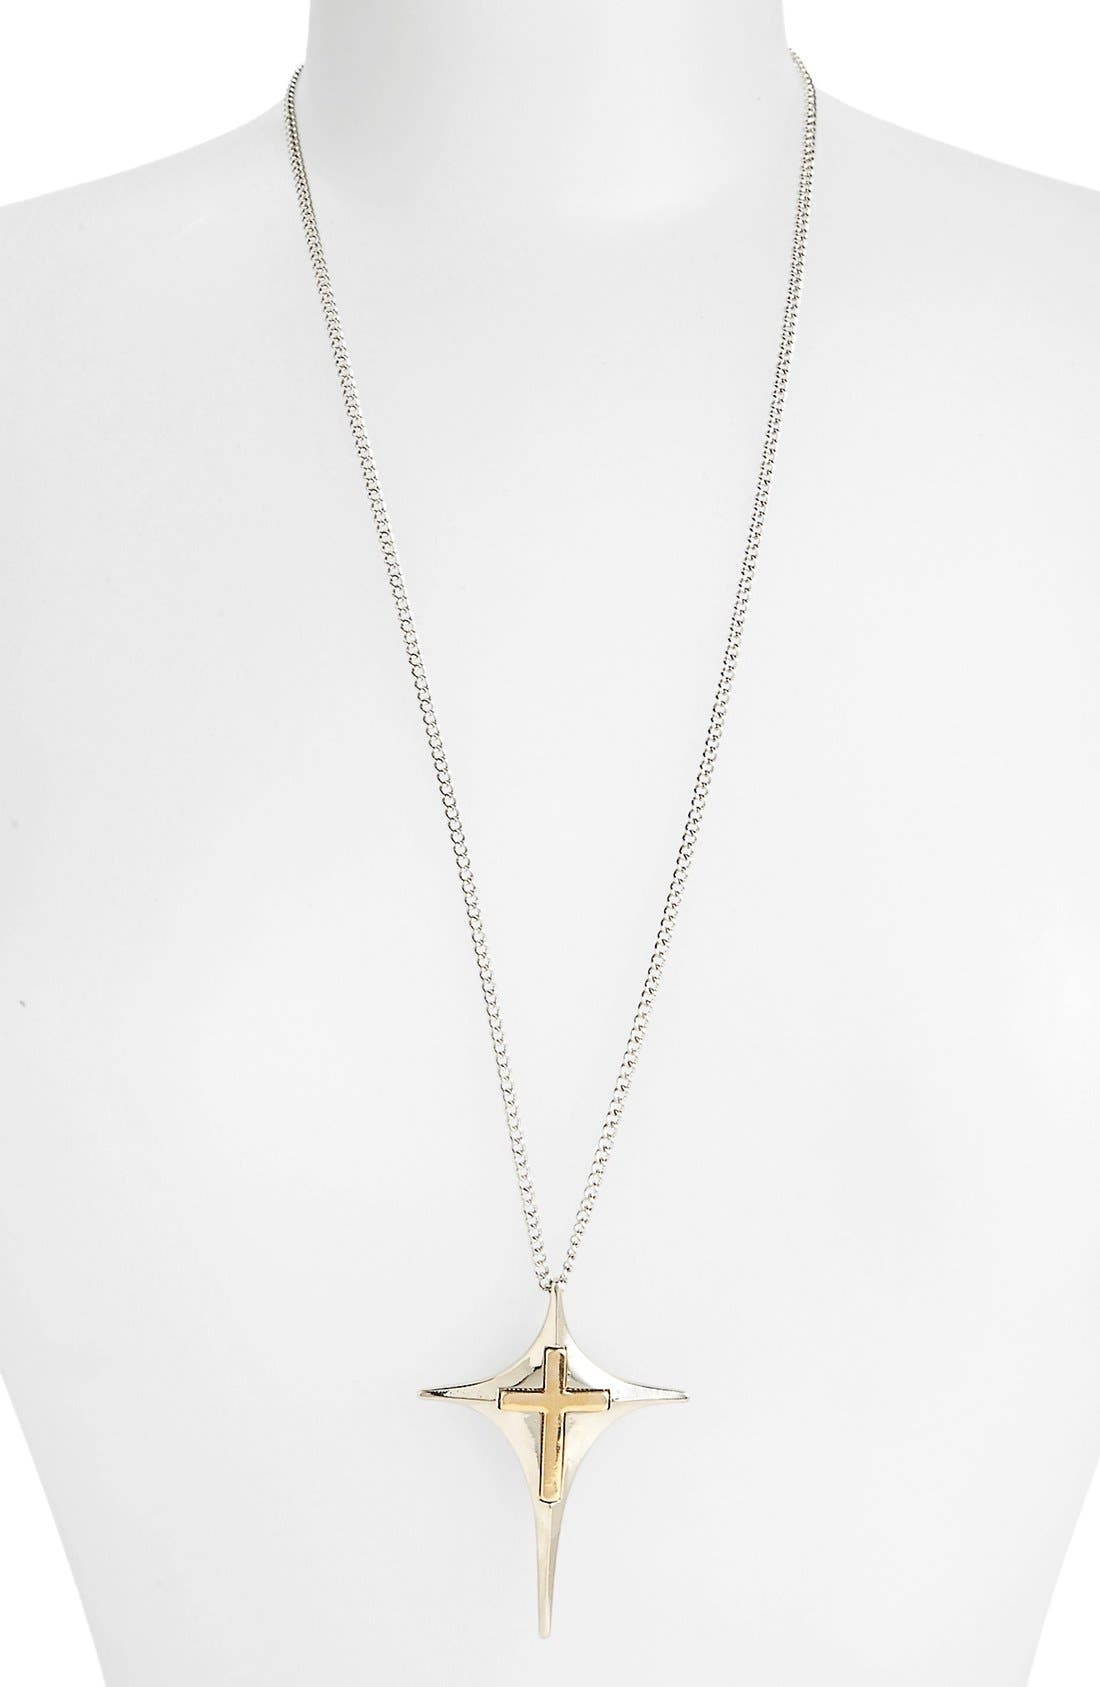 Alternate Image 1 Selected - Topshop Kite & Cross Pendant Necklace